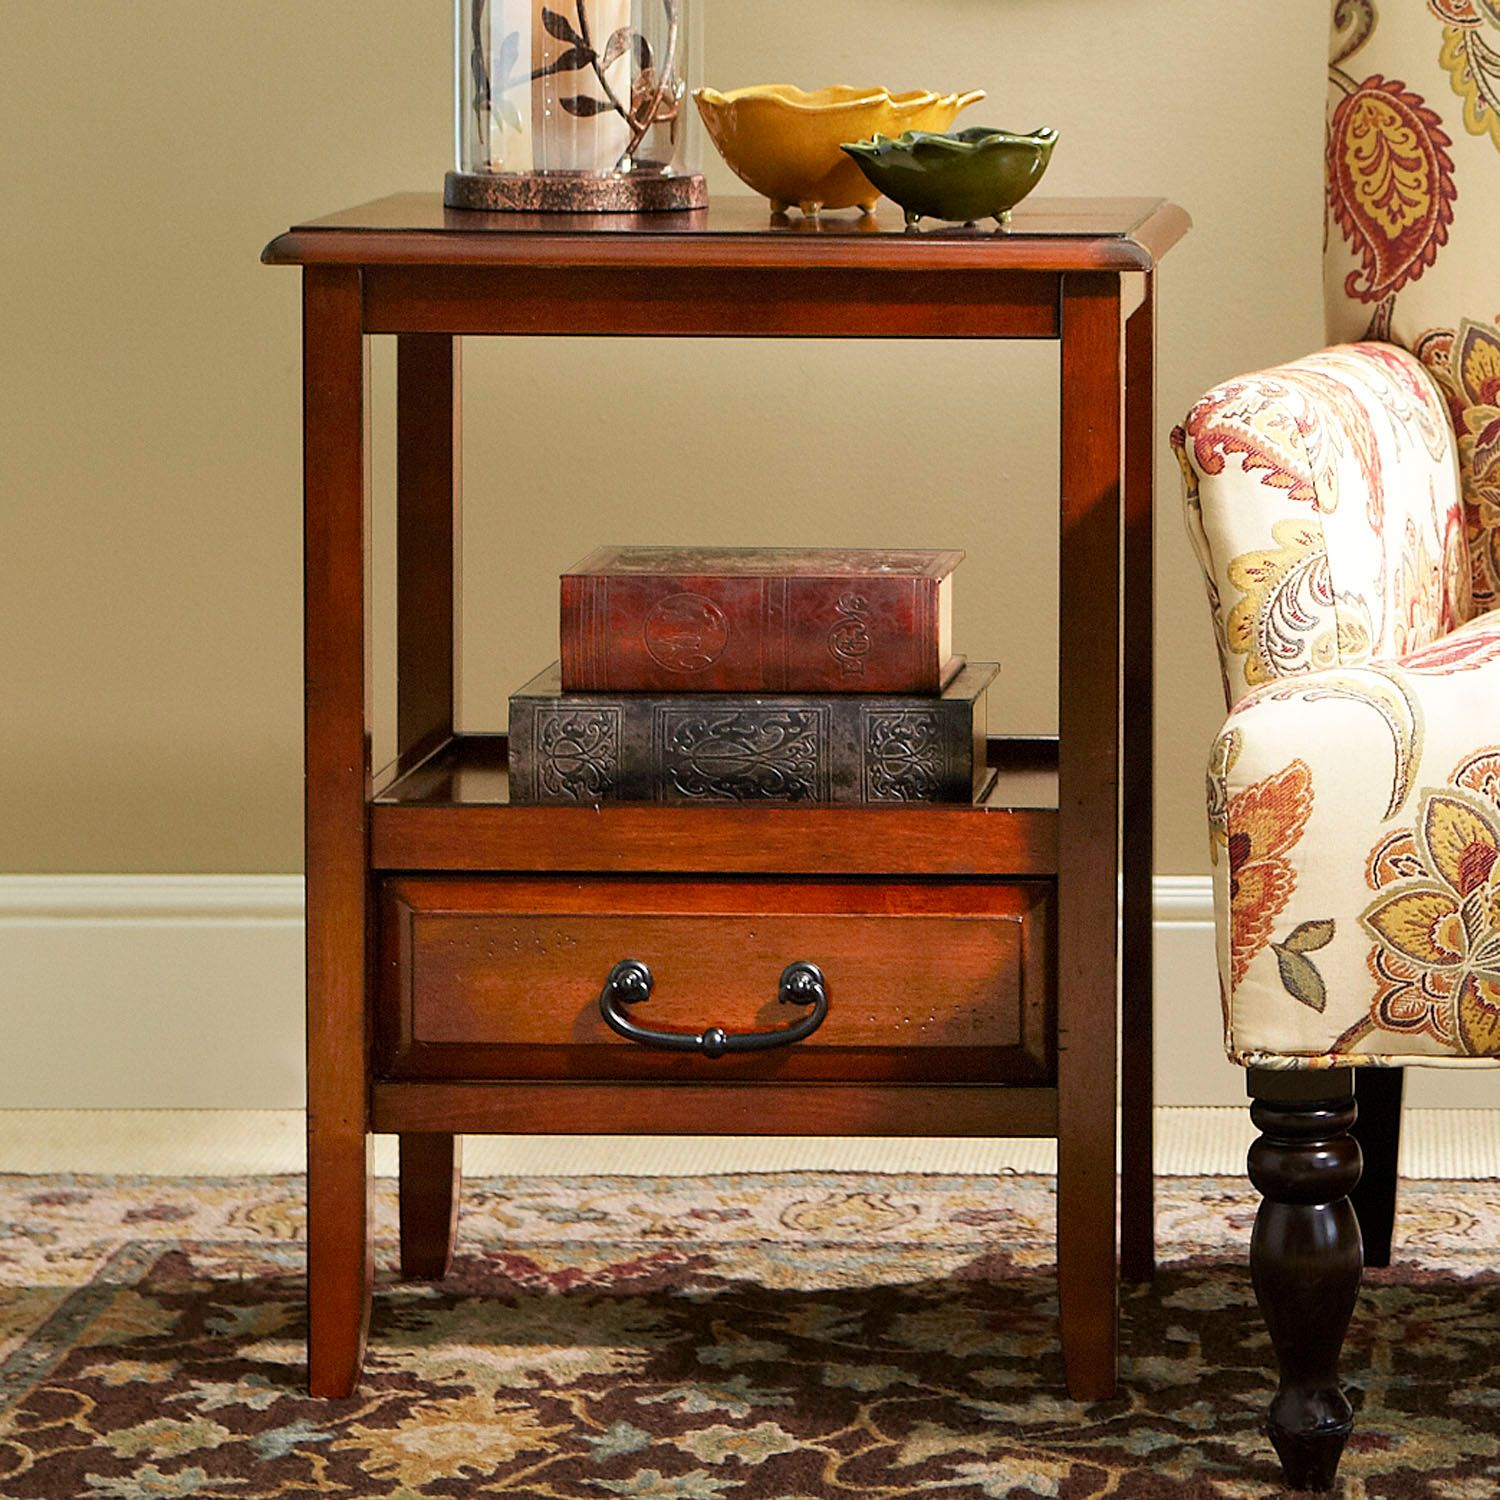 anywhere tuscan brown end table with pull handles pier imports one accent black wrought iron outdoor coffee yellow target circular plastic cloth console garden storage units